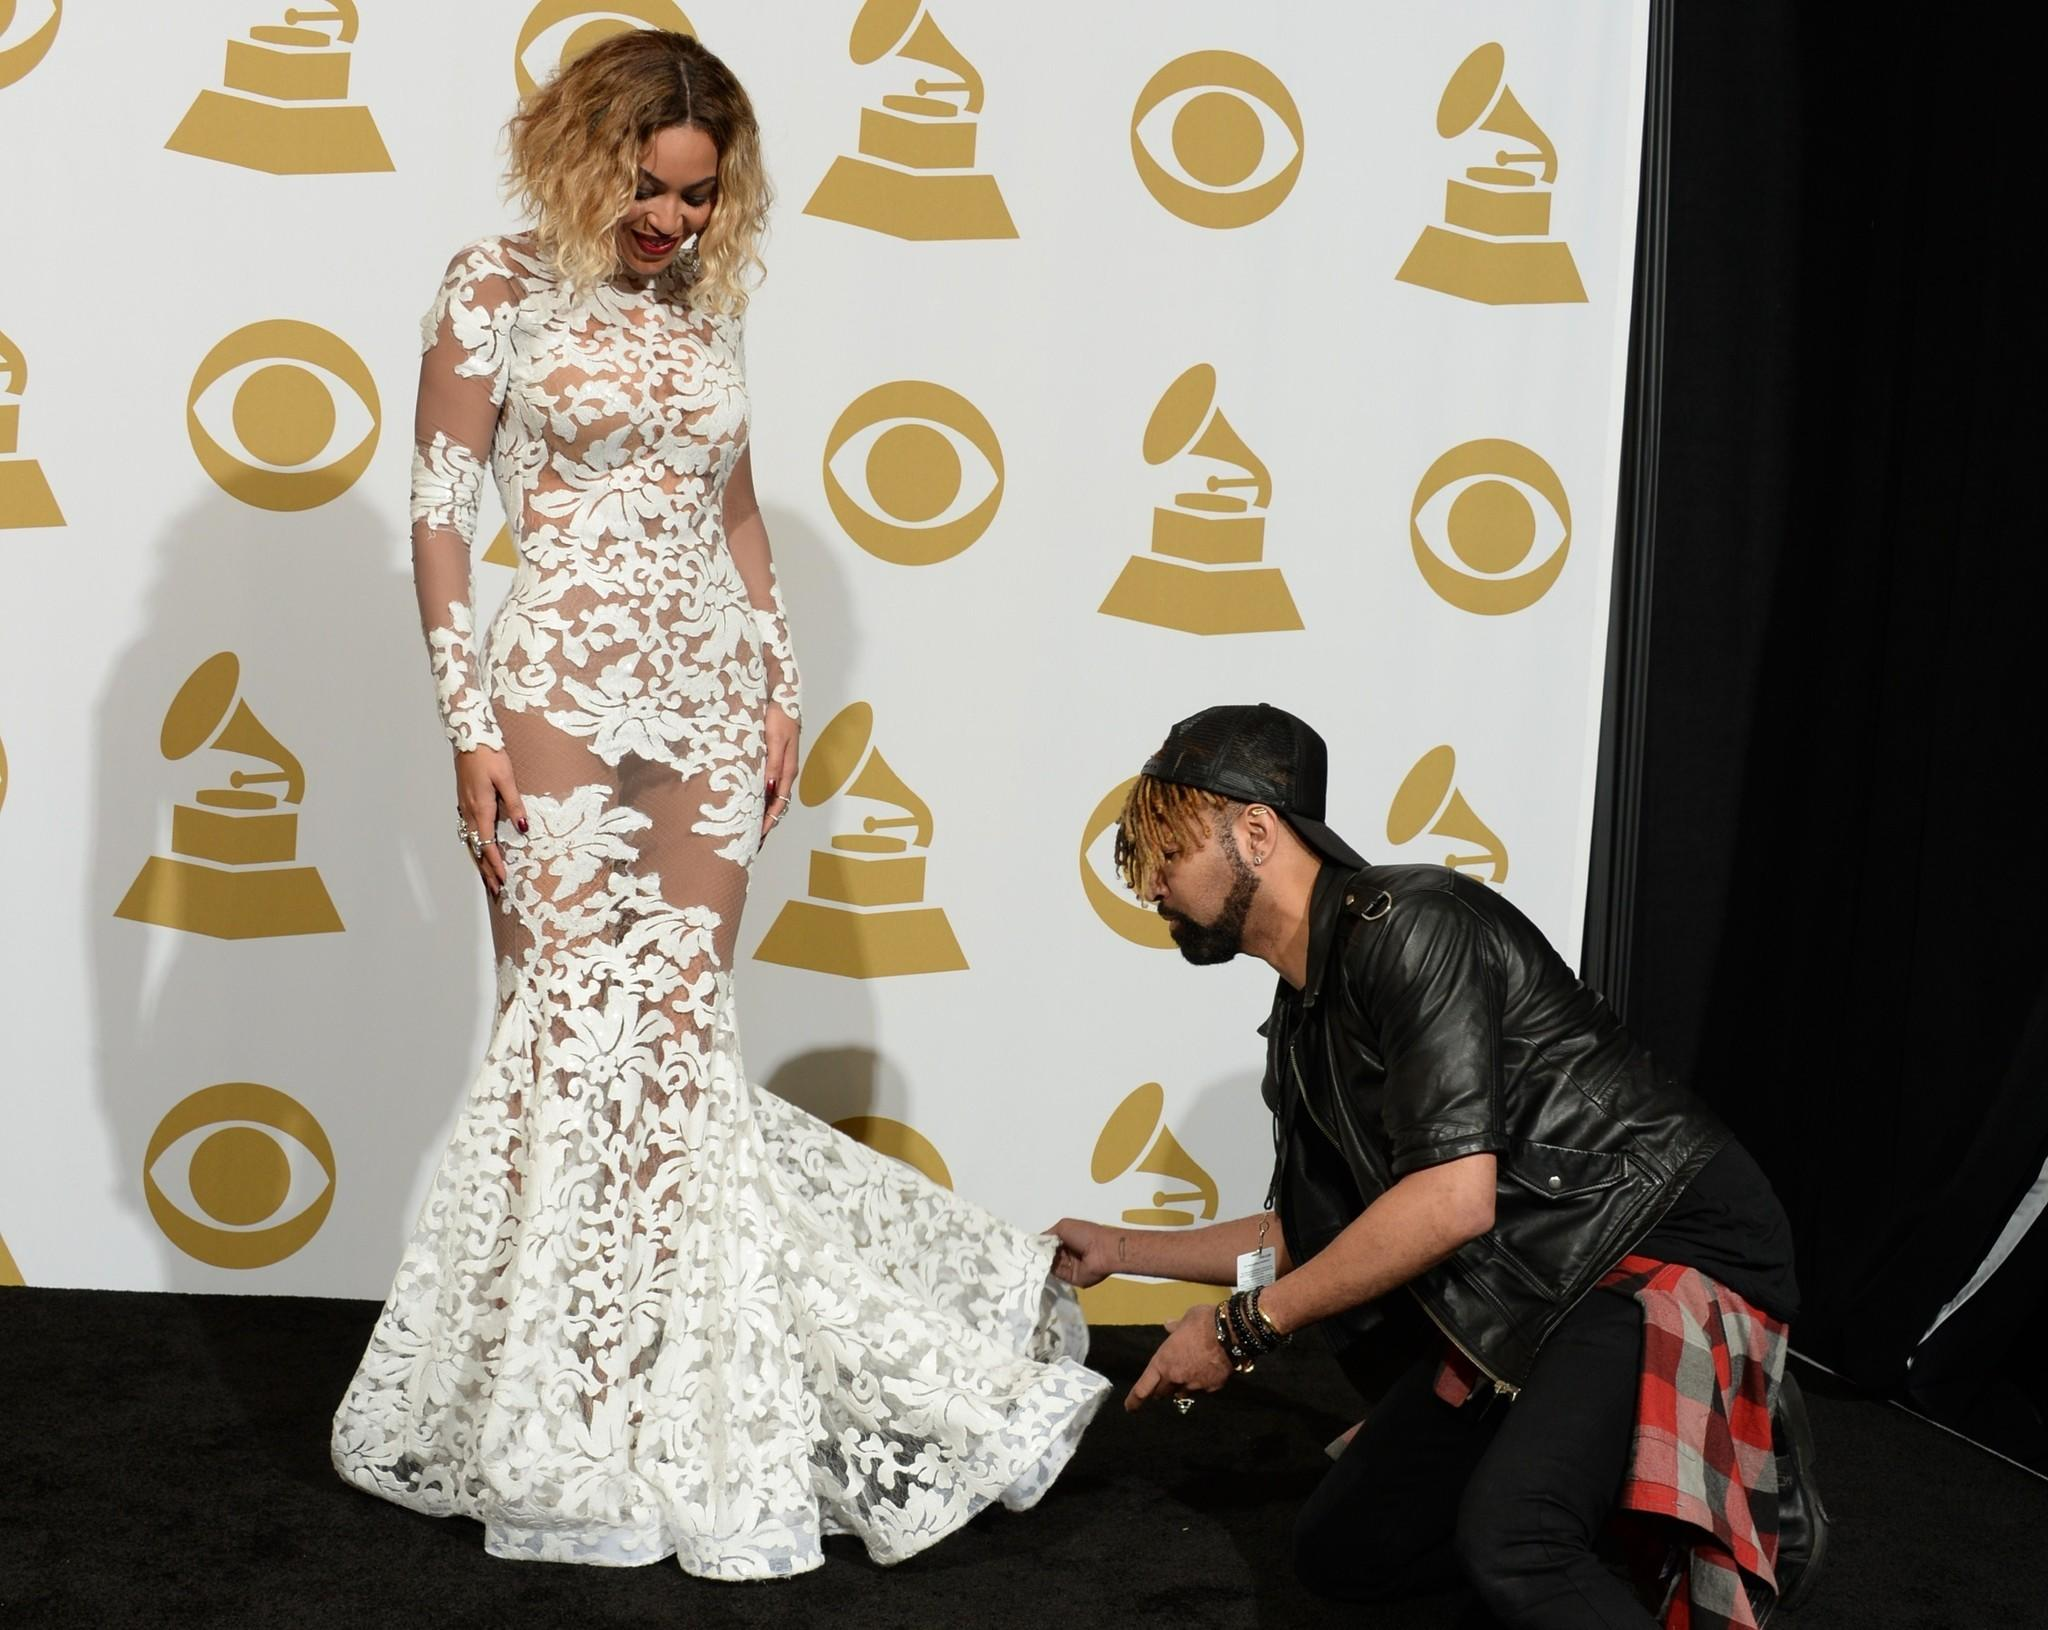 Beyonce gets some help arranging her gown in the press room at the 56th Grammy Awards.